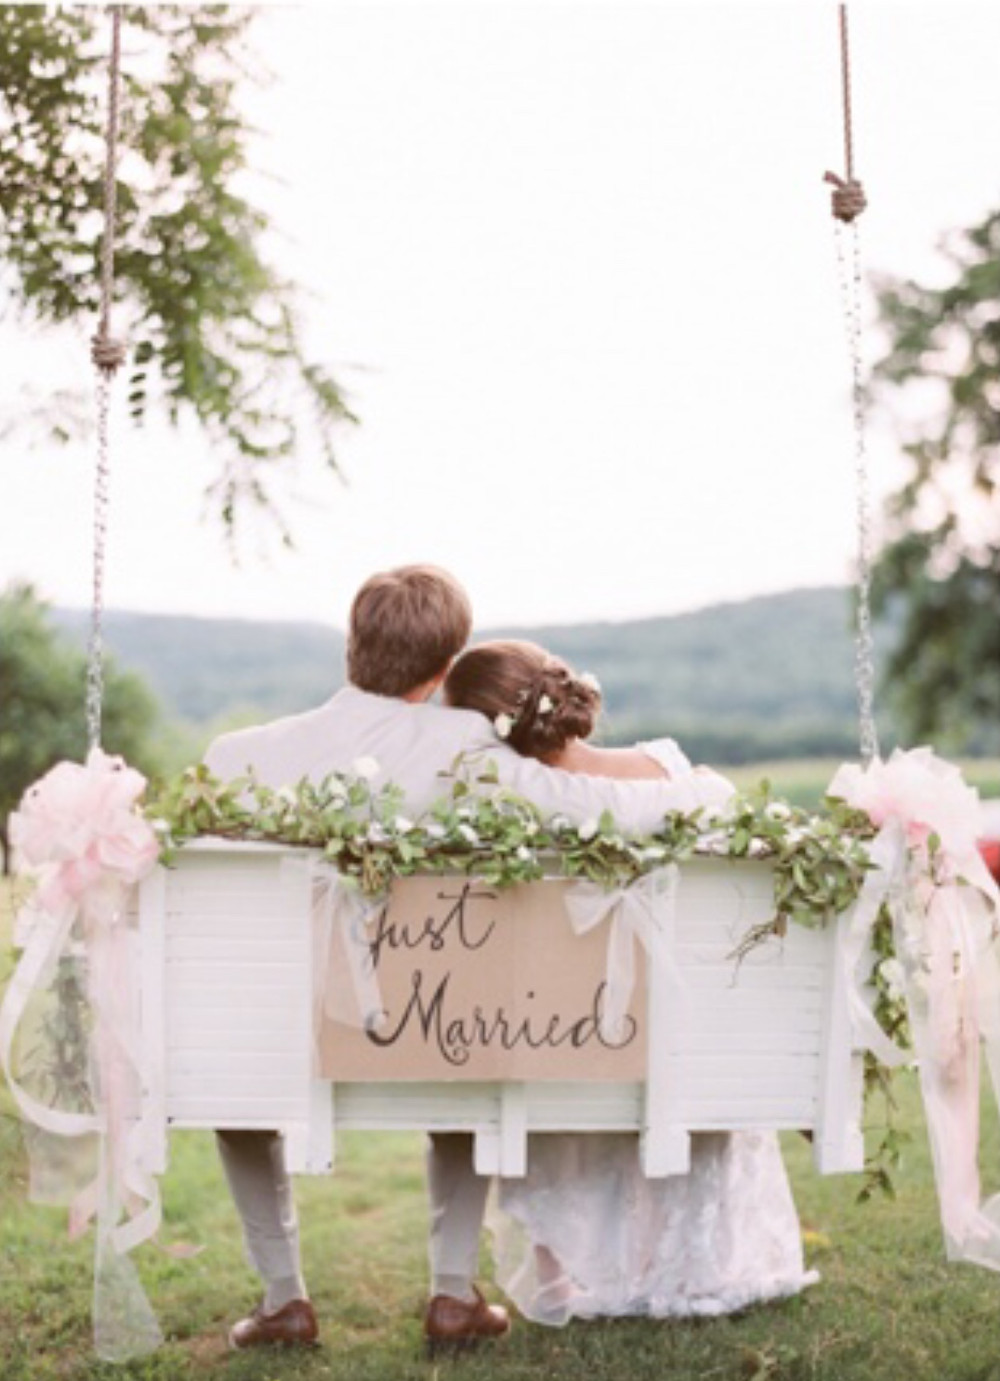 Porch Swing - Just Married - Franklin, Tennessee